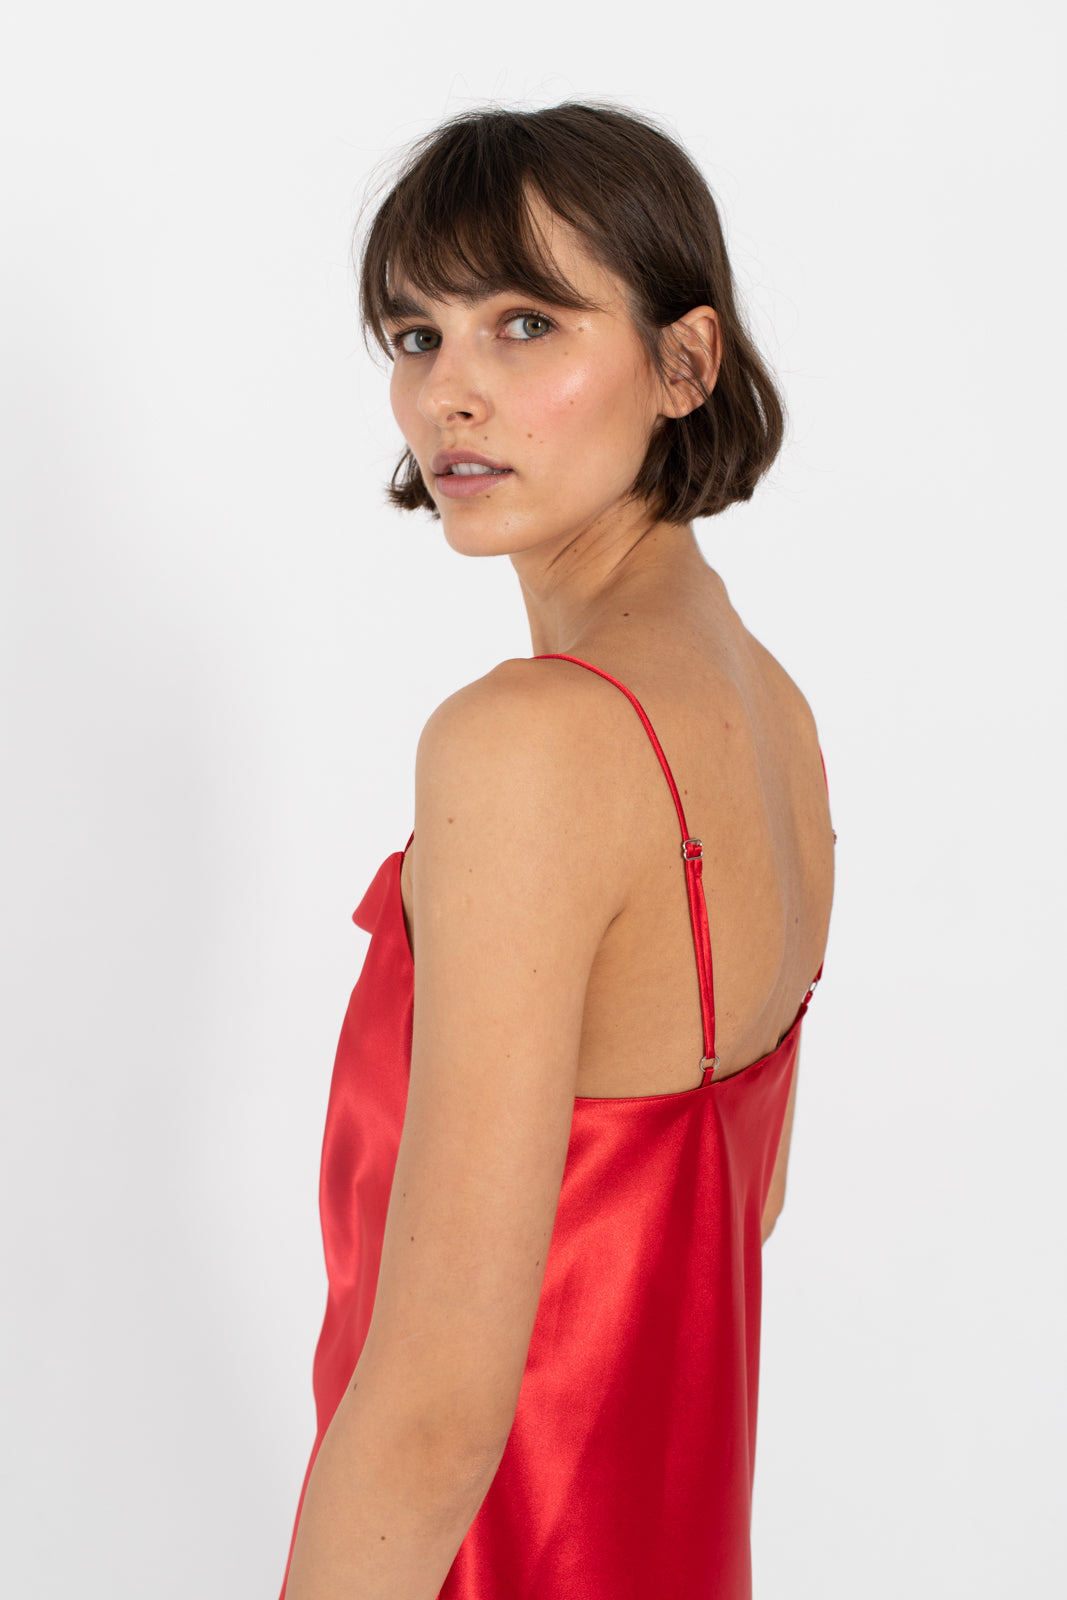 NUDIST-Deep-red-slip-on-top-summer-sliptop-alternative-silk-le-slap-spaghetti-straps.jpg